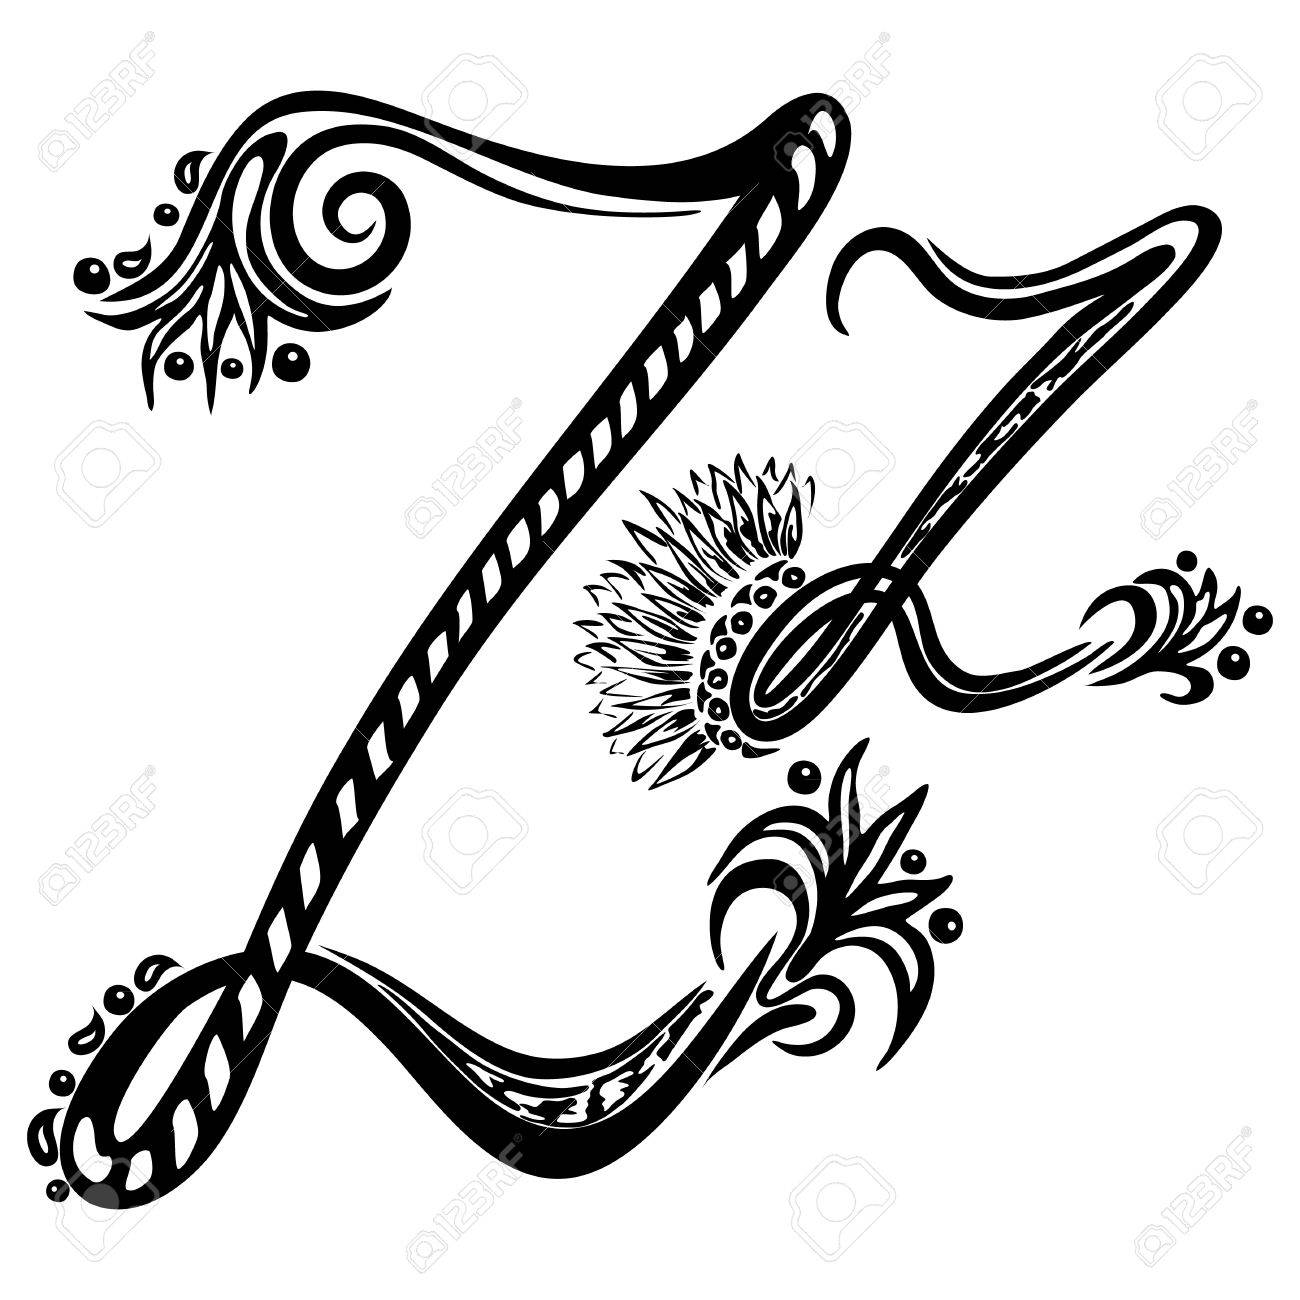 Worksheet Cursive Letter Z letter z in the style of abstract floral pattern on a white background stock vector